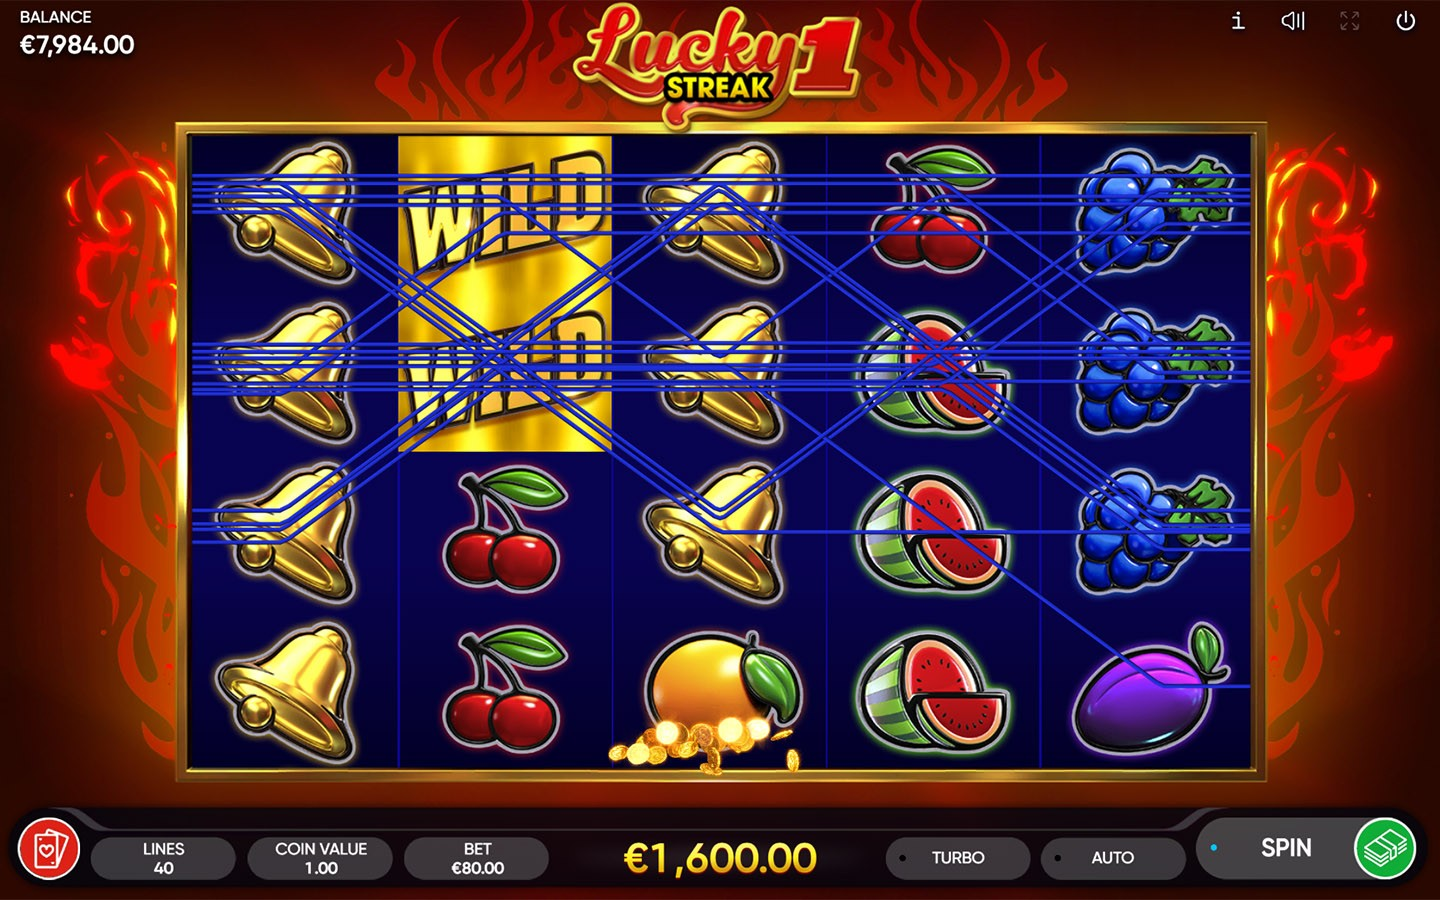 TOP FRUIT SLOTS ONLINE | Try LUCKY STREAK 1 SLOT now!